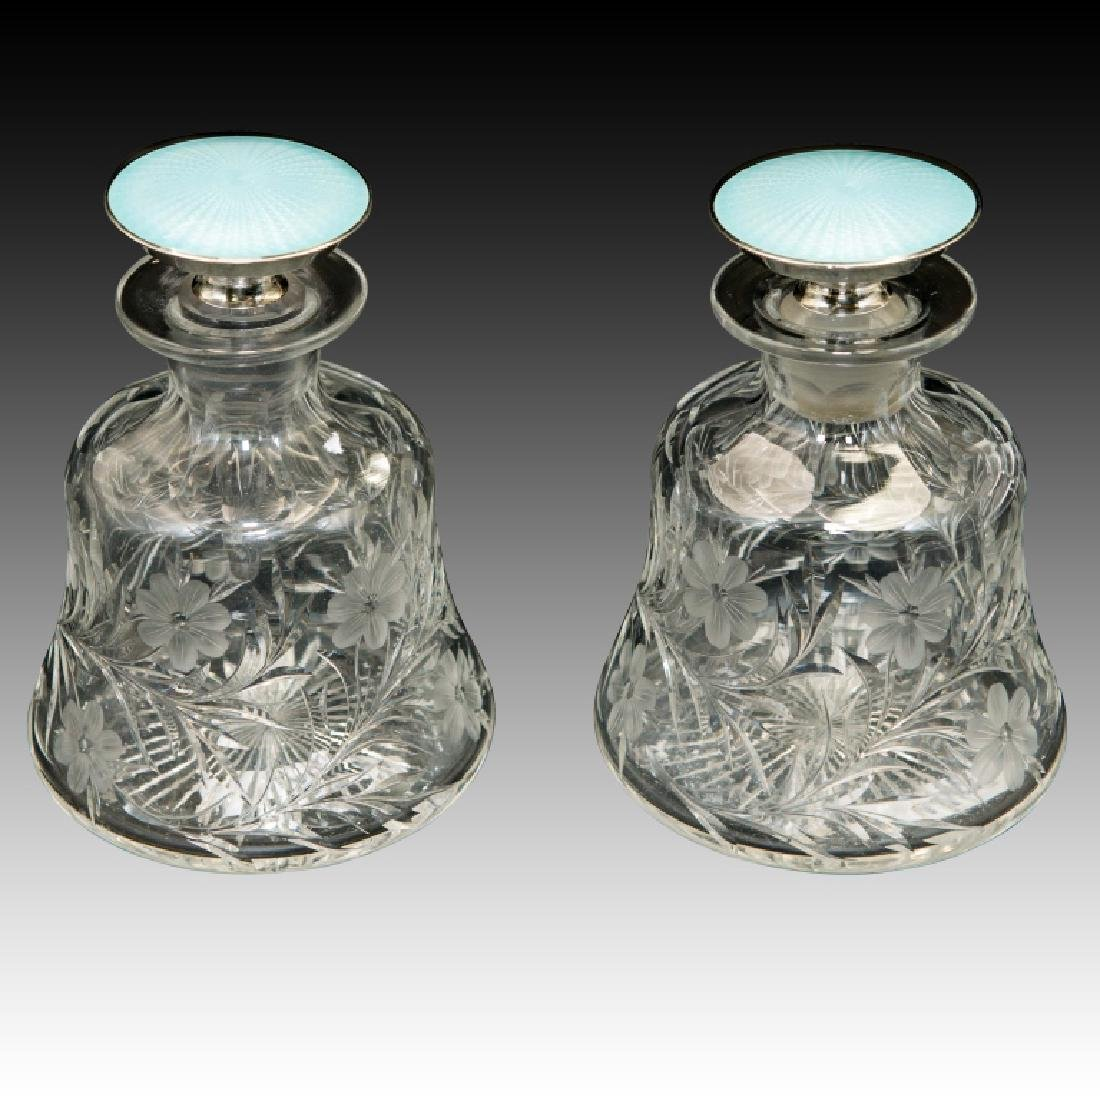 Large Pair of Guilloche Enamel and Silver/Crystal